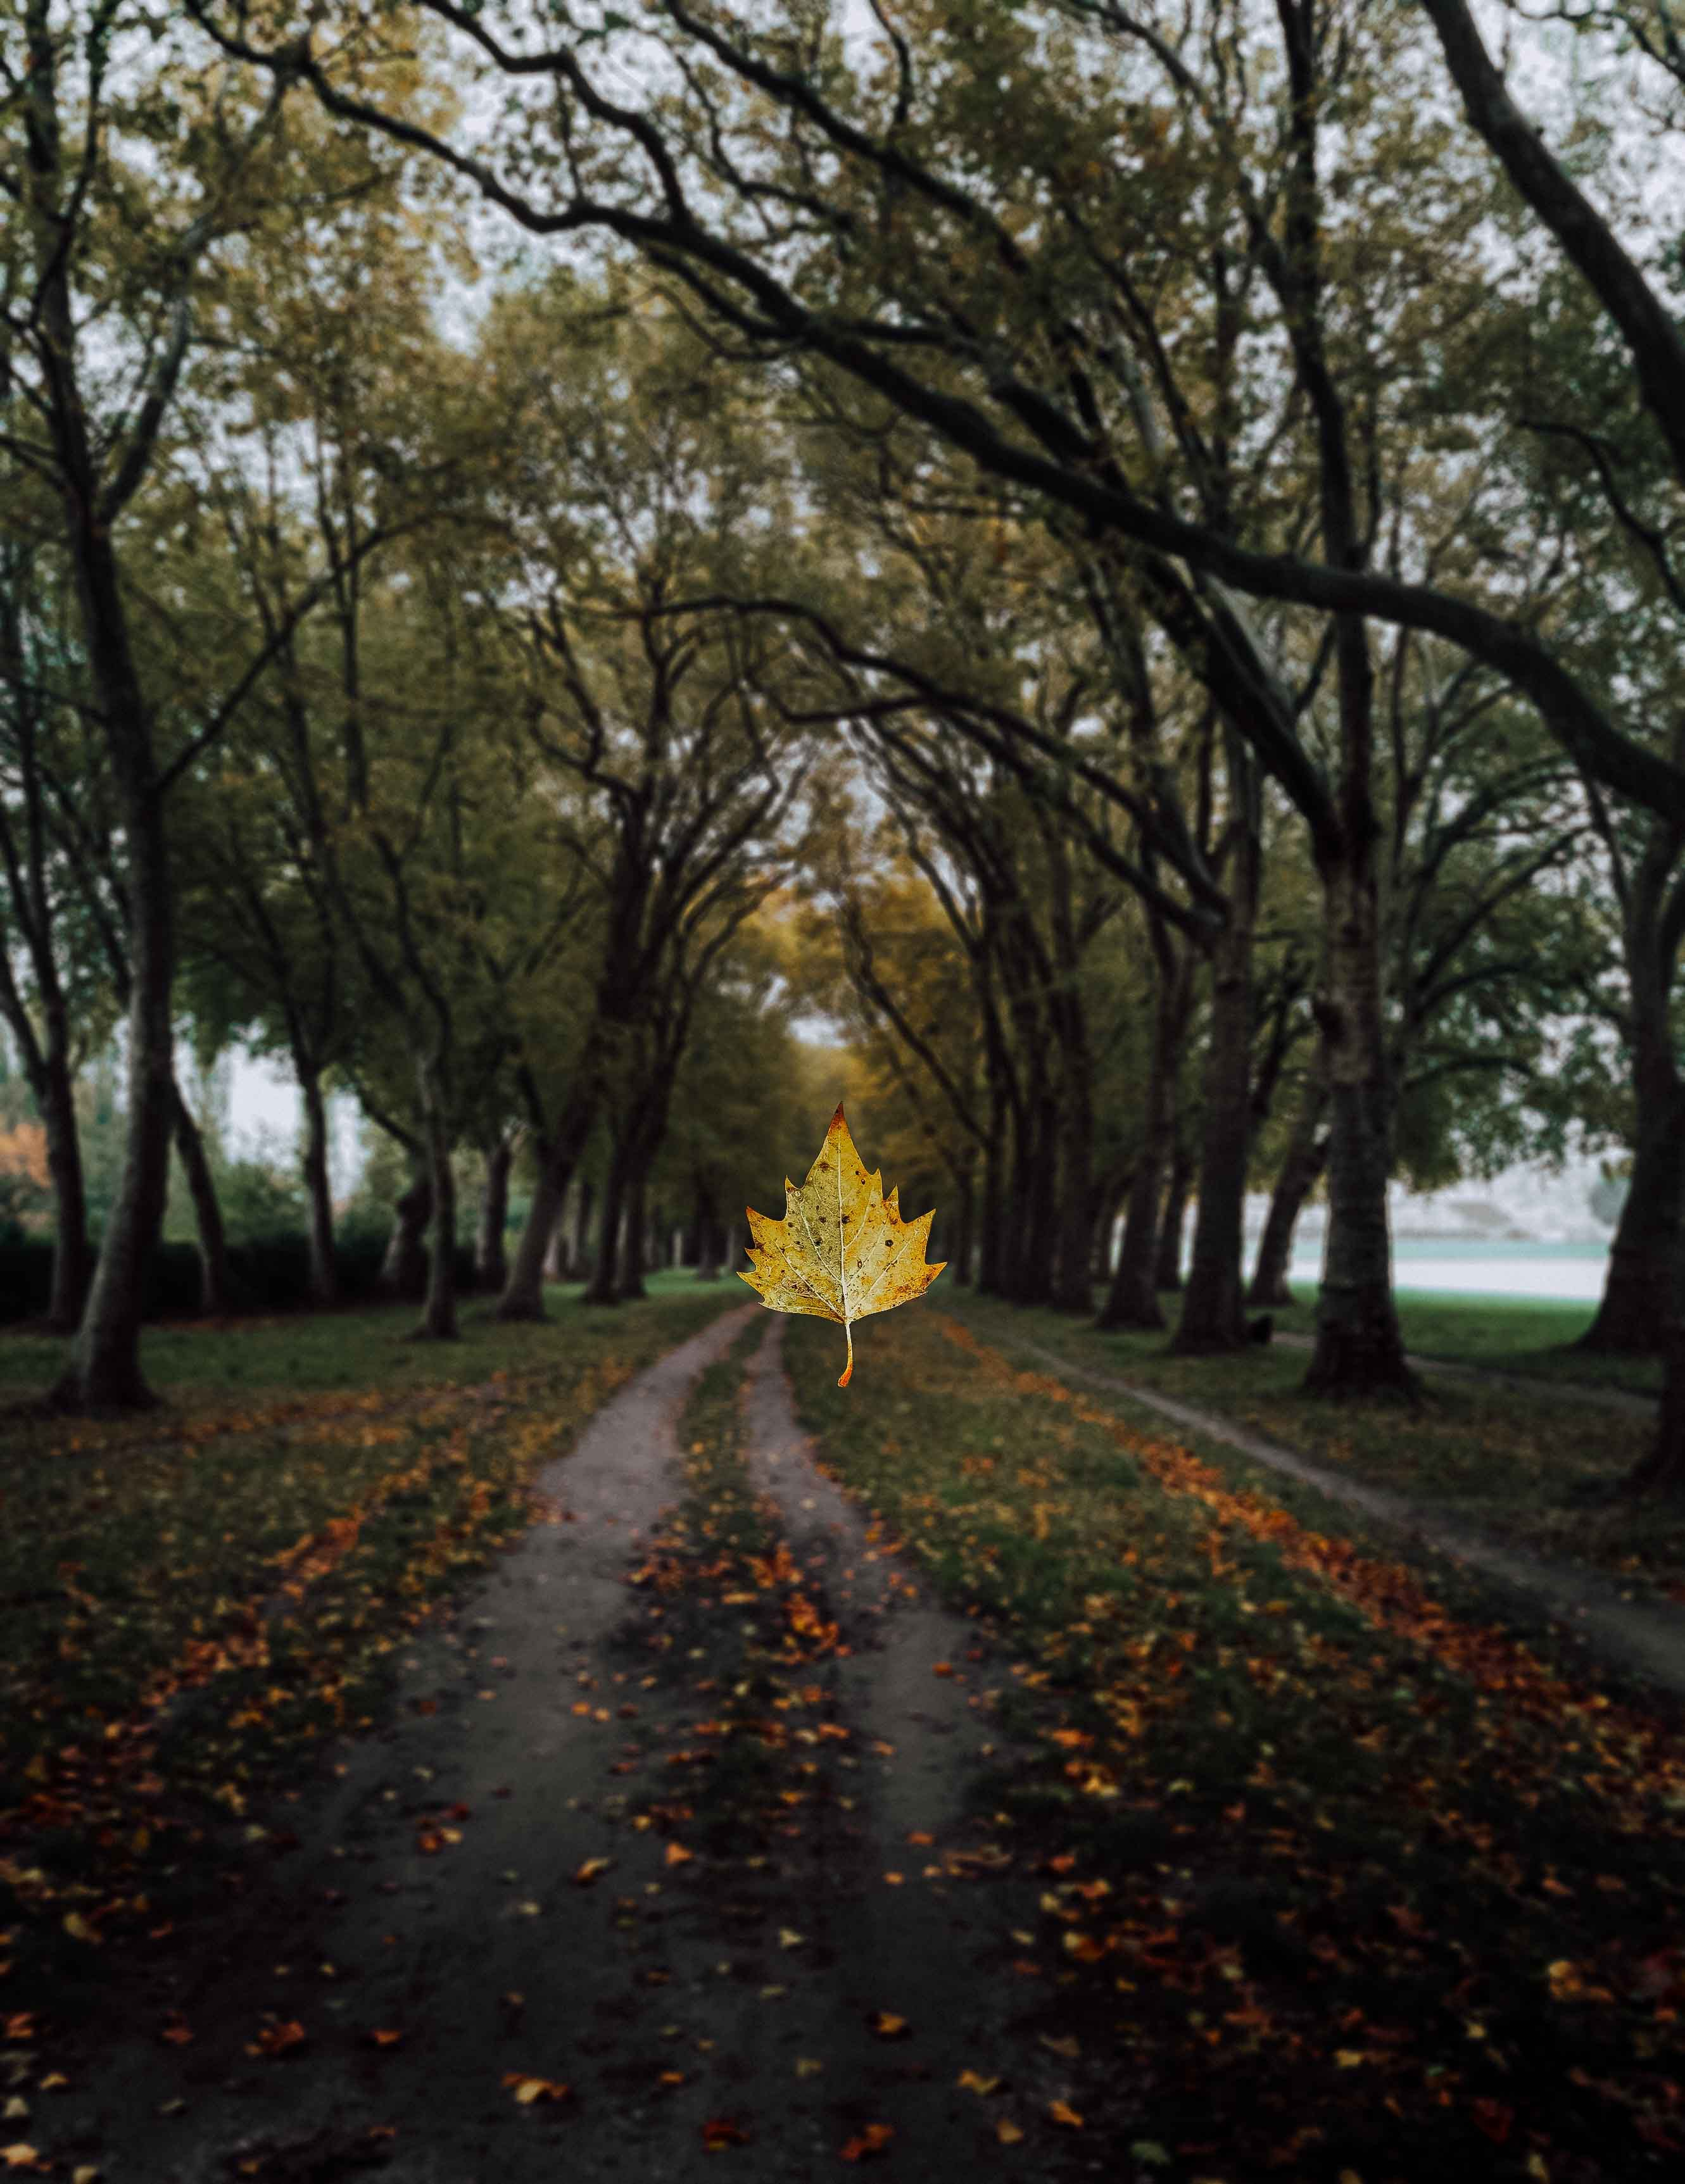 69272 download wallpaper Nature, Maple, Sheet, Leaf, Alley, Trees, Autumn screensavers and pictures for free